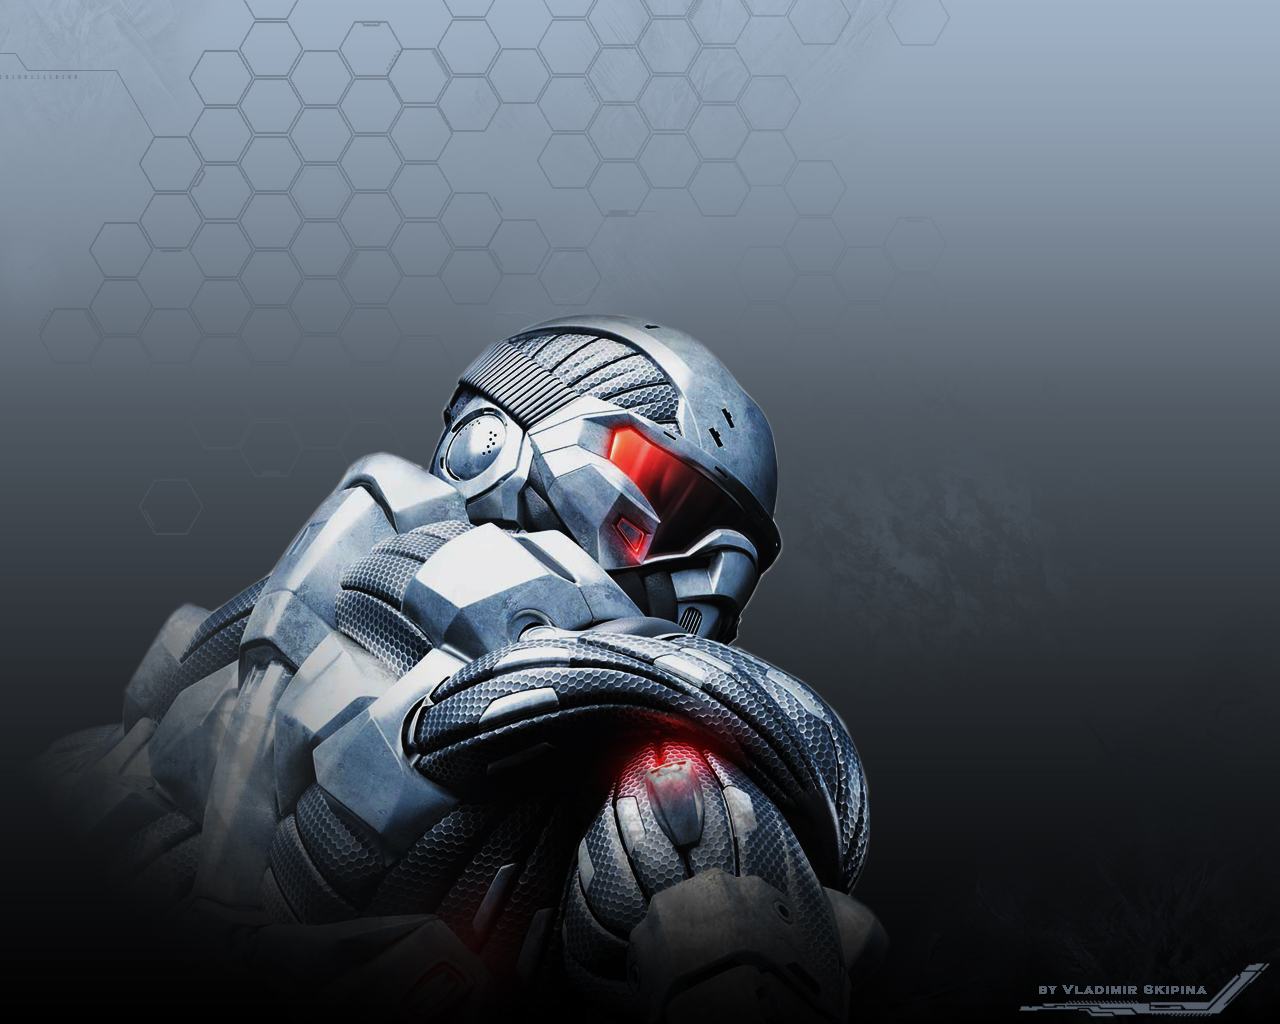 Wallpapers Crysis 2 Strategy Guide 1280x1024